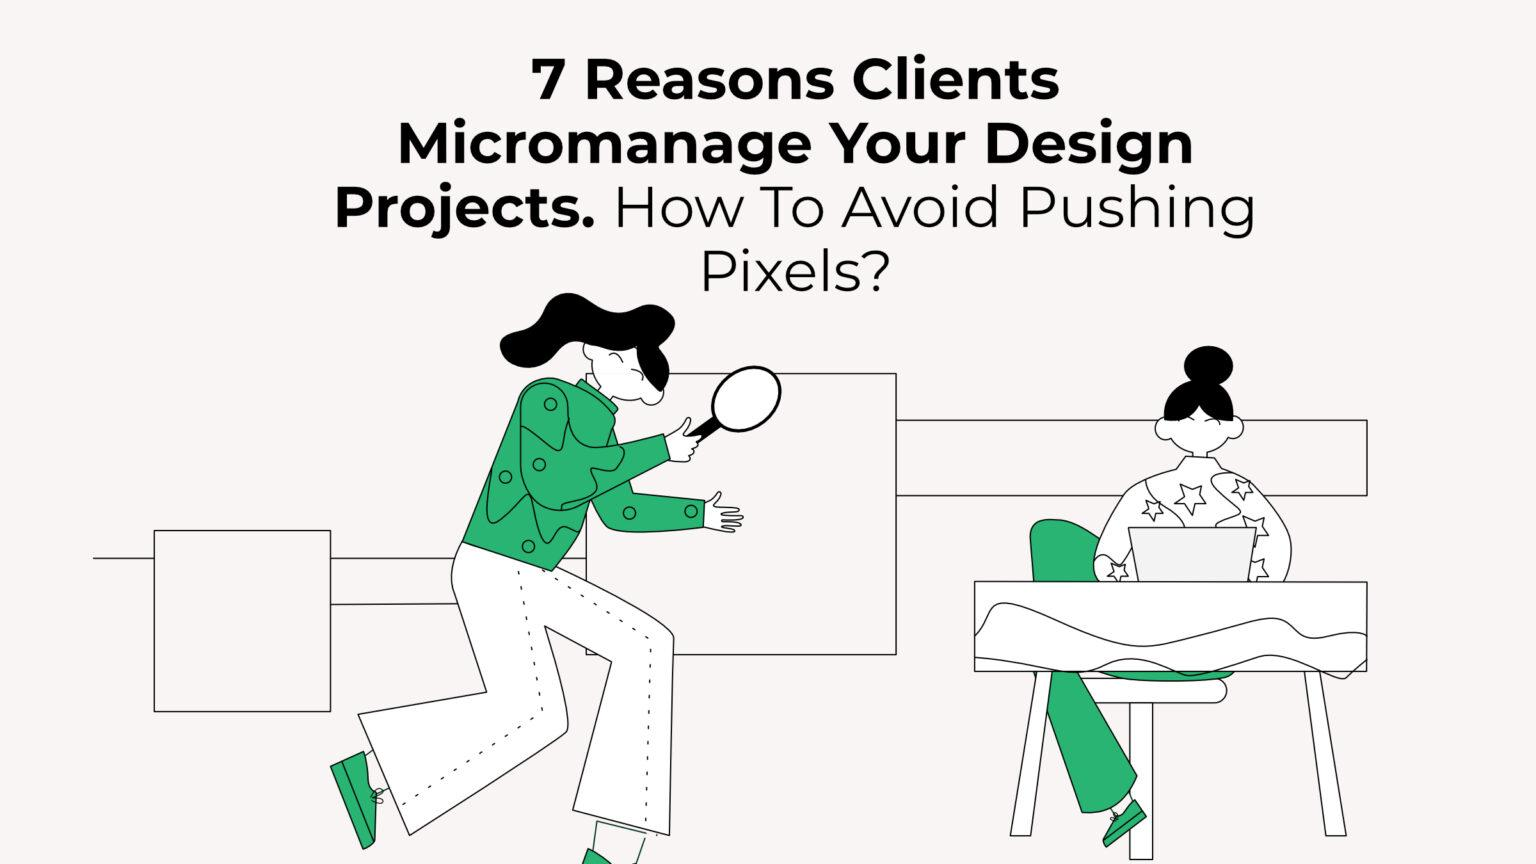 Micromanage Design Projects